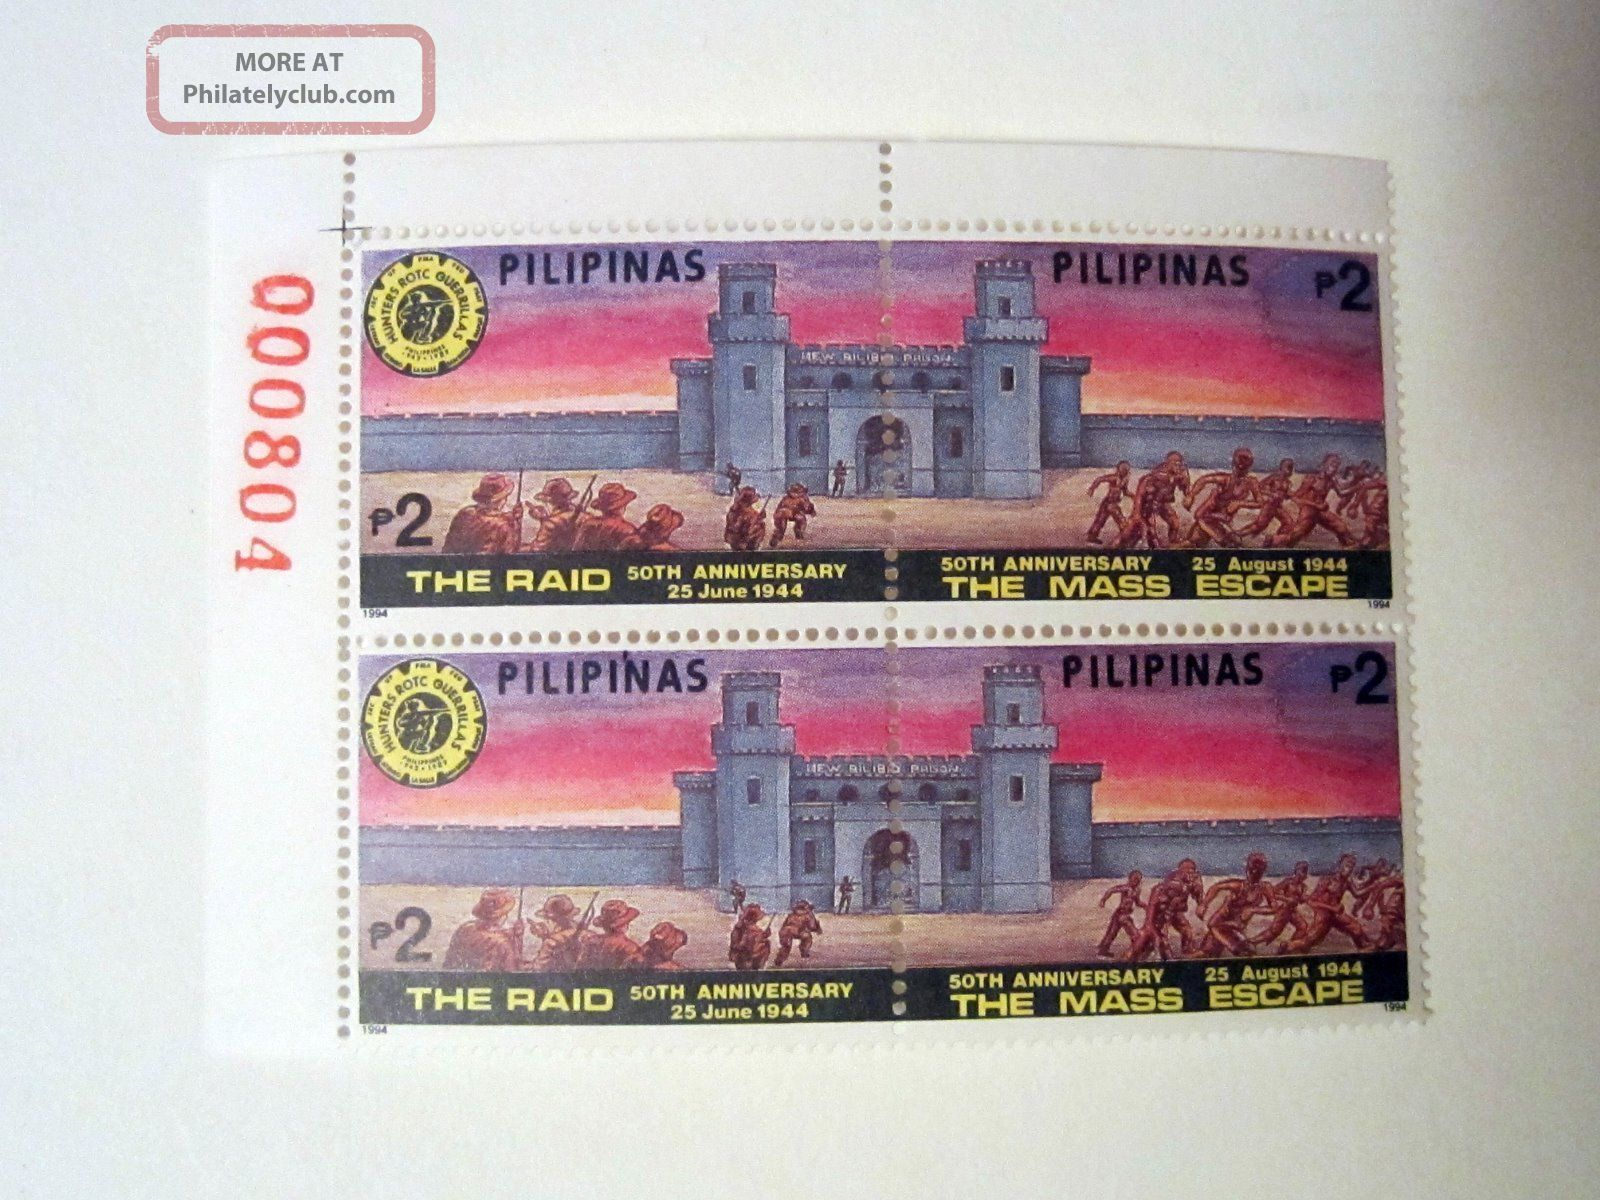 Philippines Pilipinas The Raid 50th Anniversary1994 Plate Stamp Asia photo